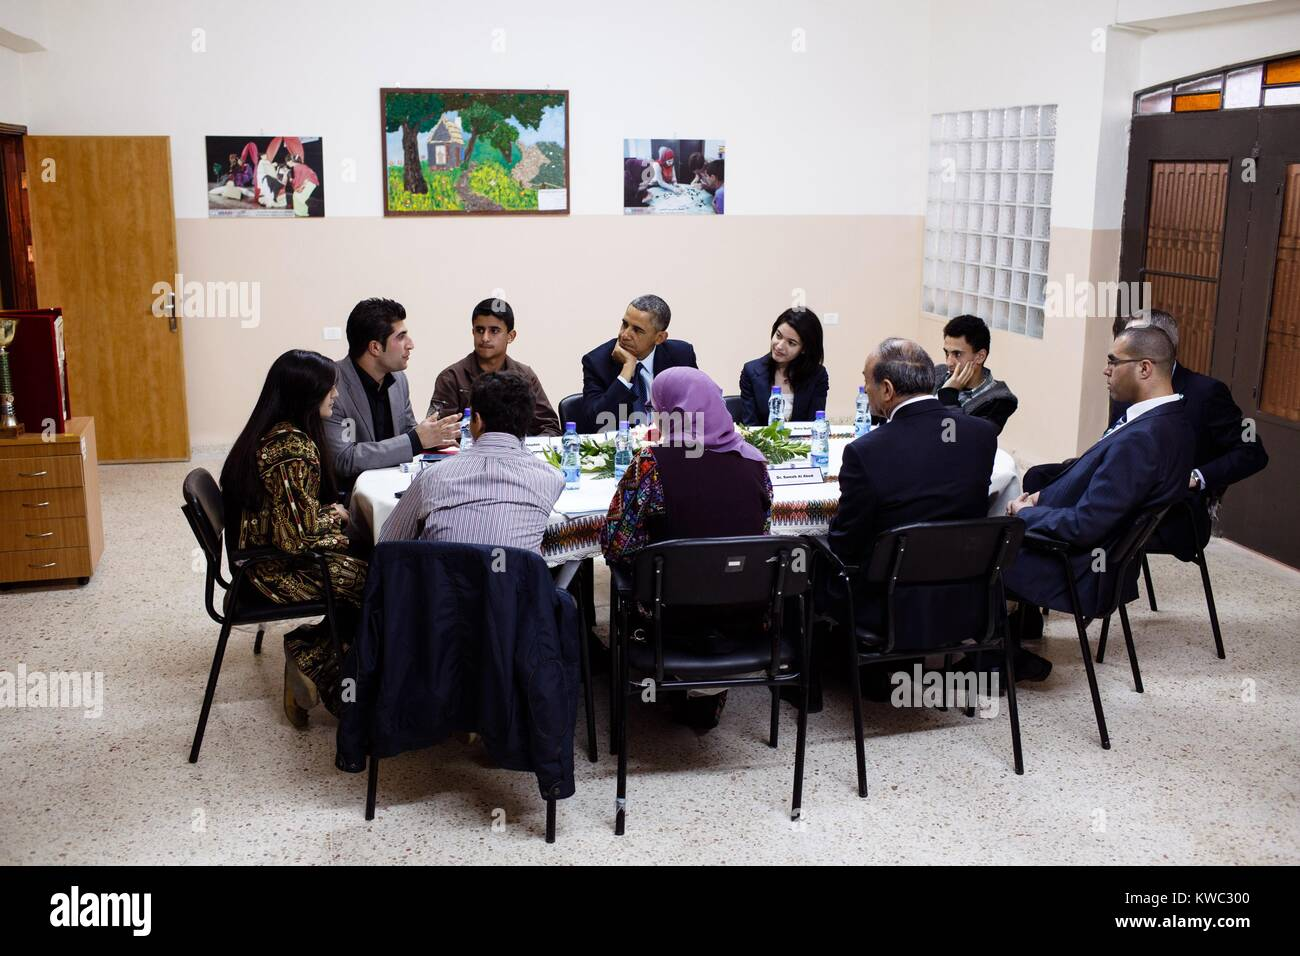 President Obama meets with Palestinian youth in Ramallah, the West Bank, March 21, 2013. (BSLOC_2015_13_156) - Stock Image